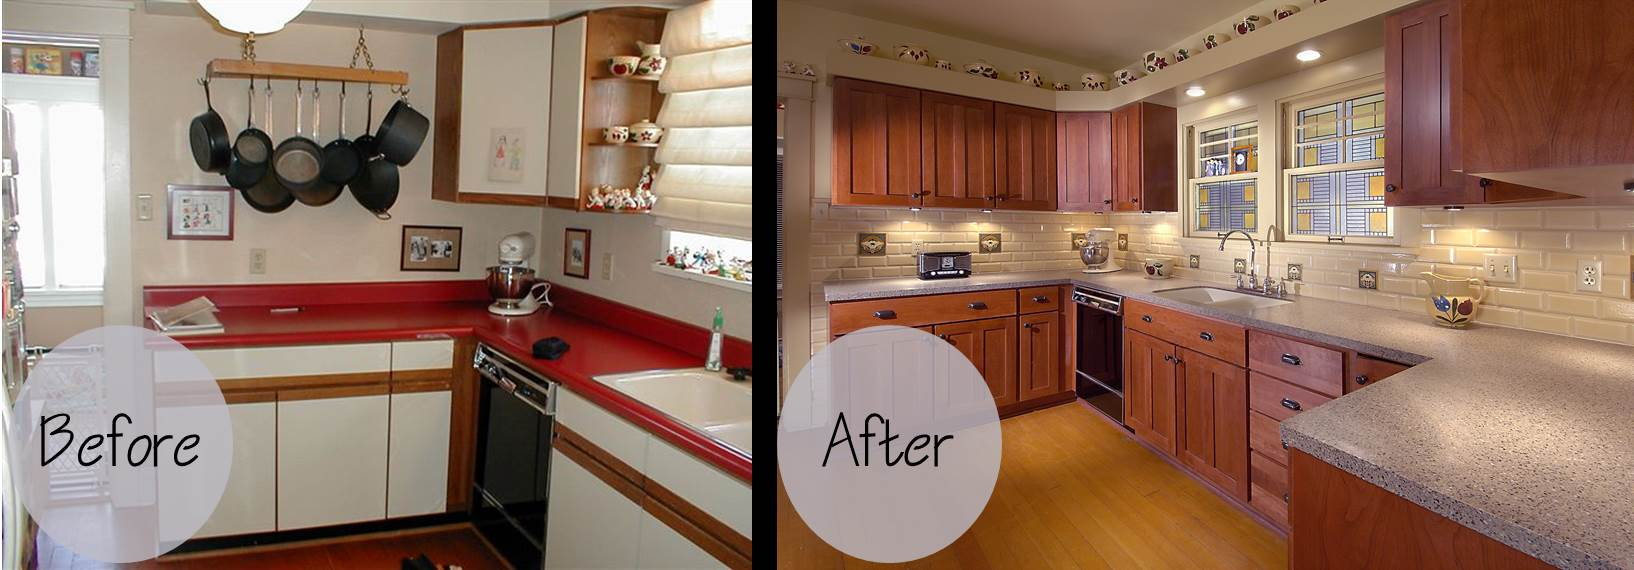 refacing kitchen cabinets before and after cabinet refacing gallery wheeler brothers construction 25246